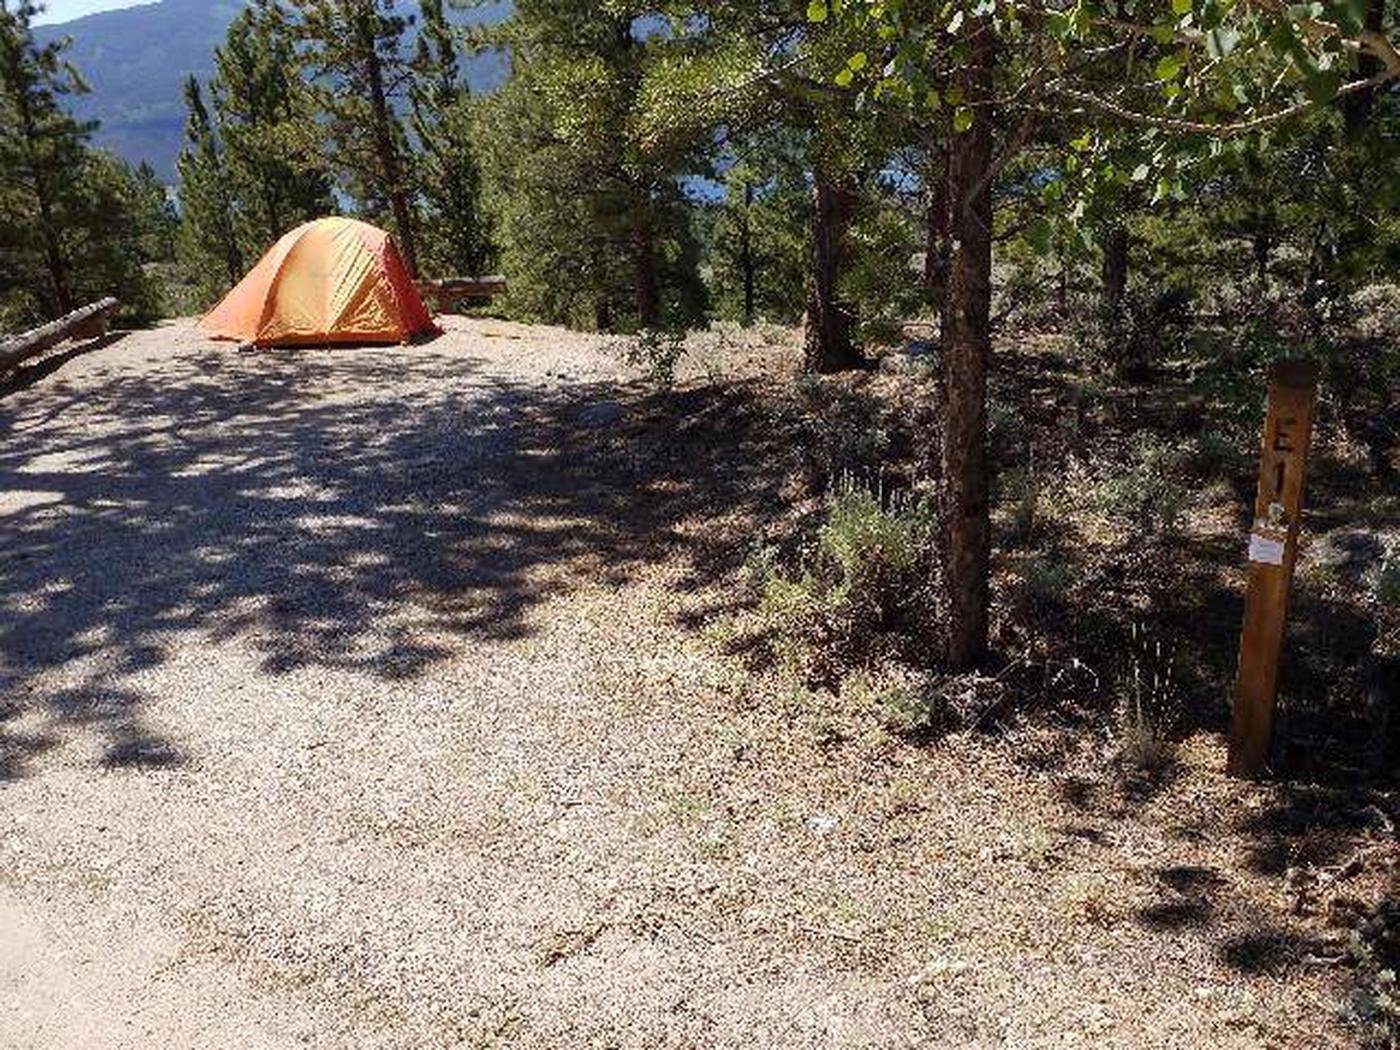 Lakeview Campground, site E1 camping spot